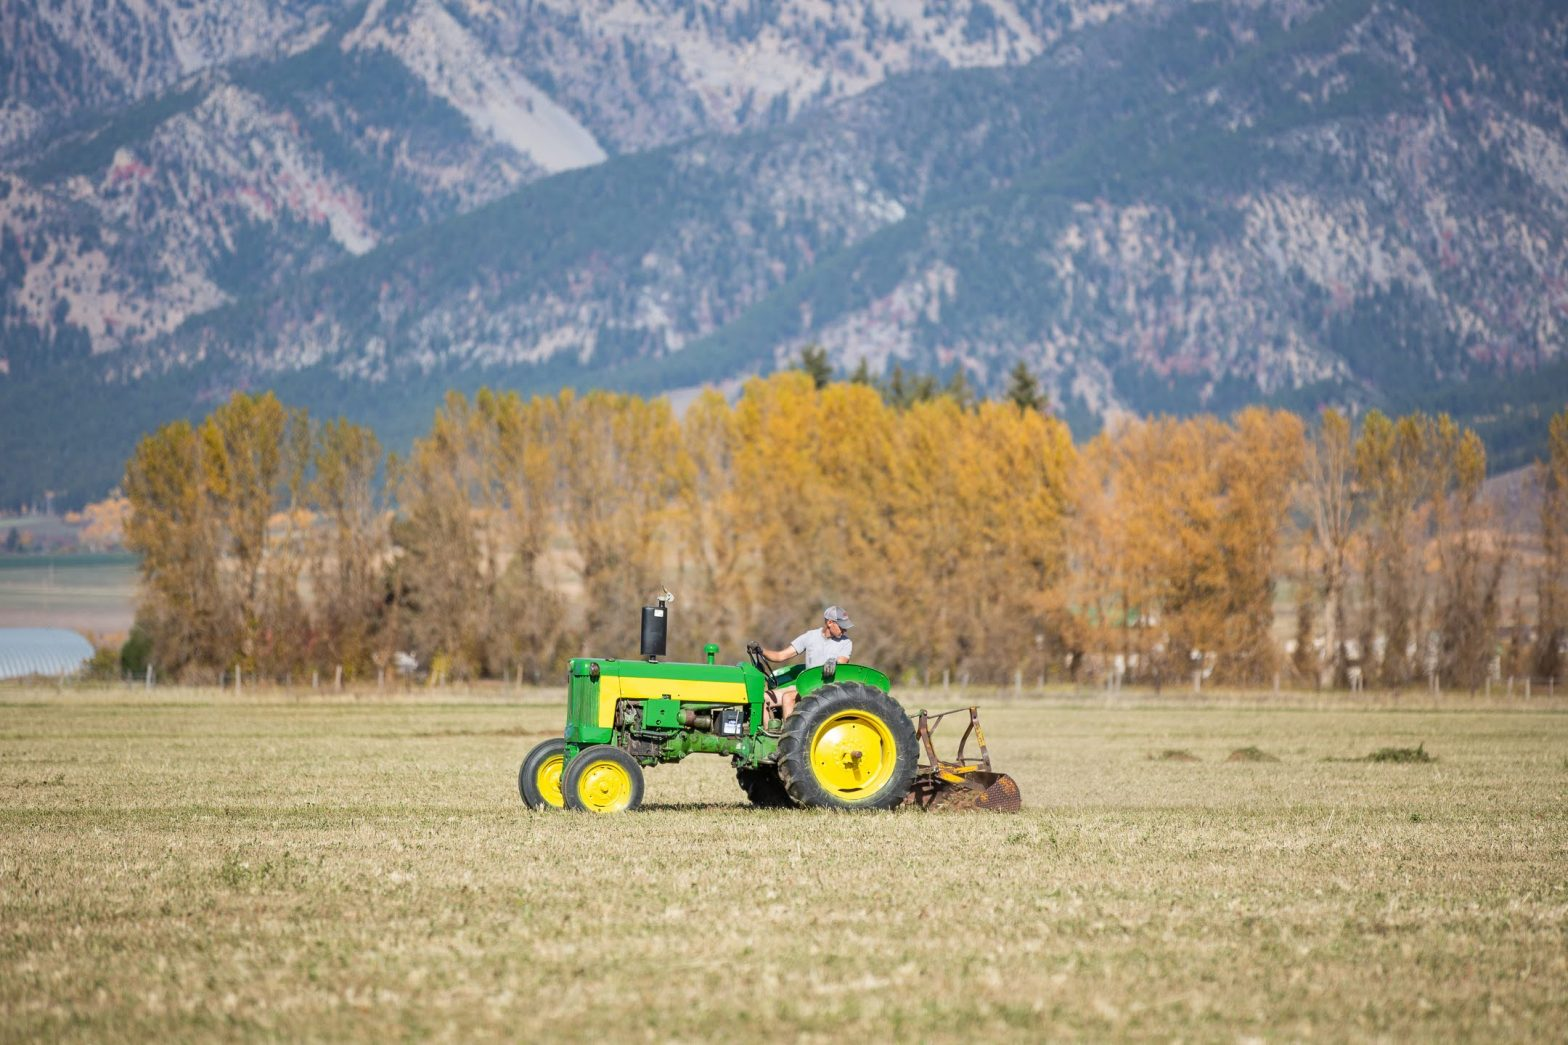 John Deere 435 with mountains